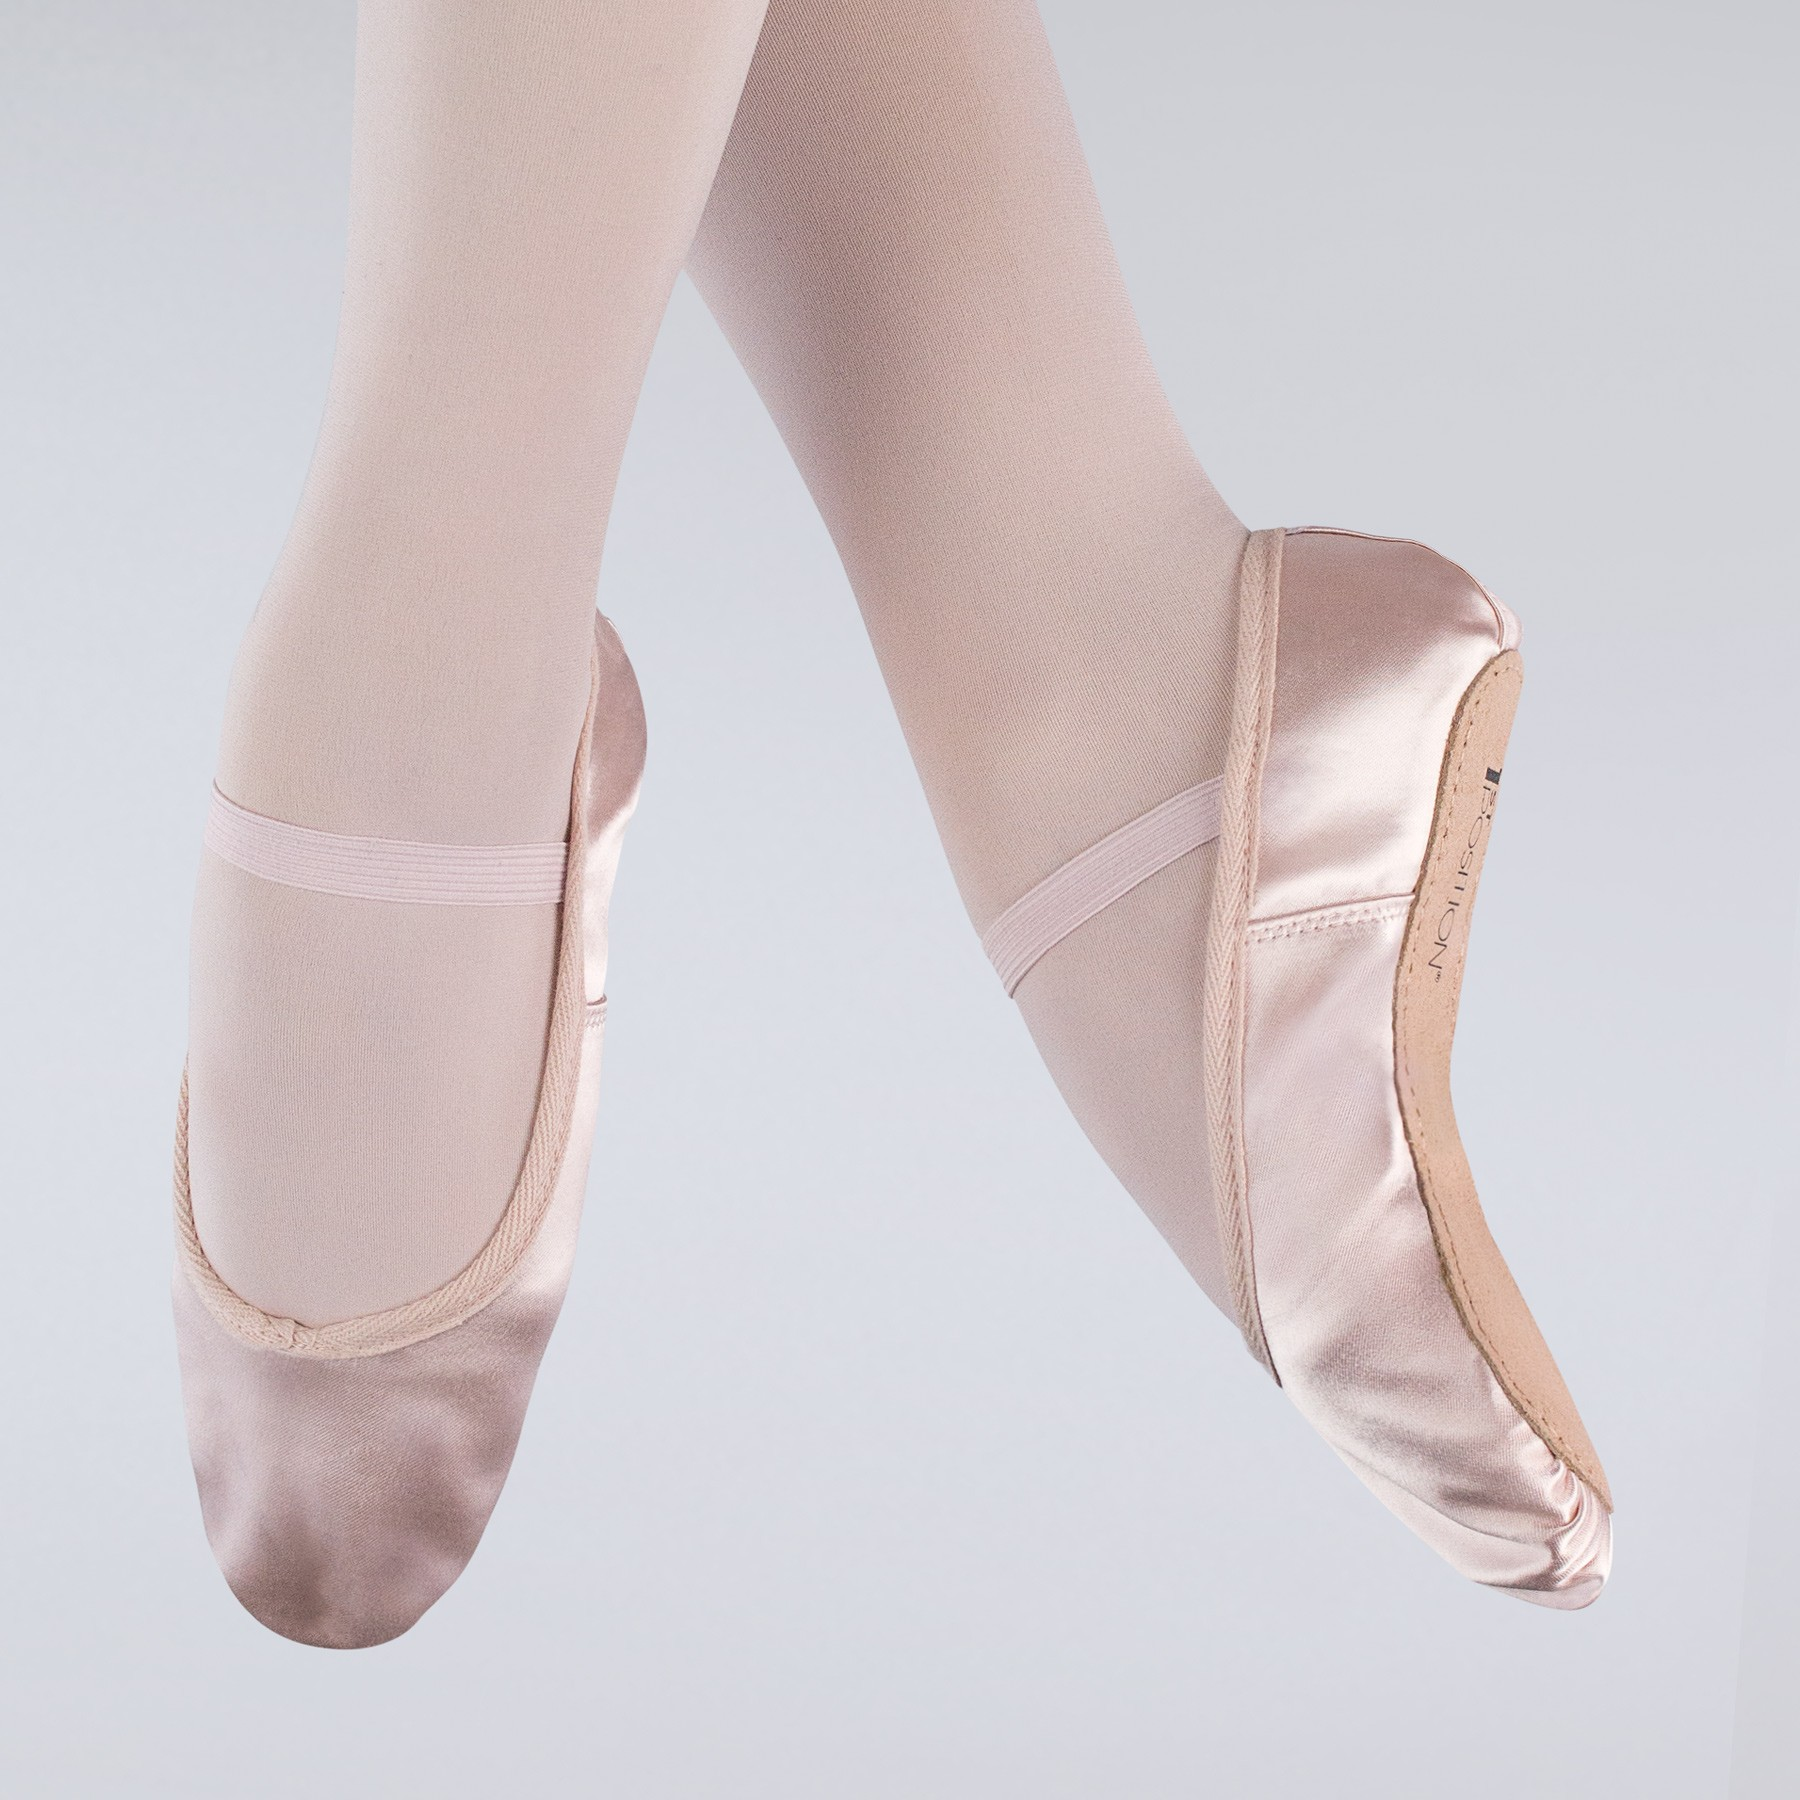 92ea3580f49b 1st Position Satin Ballet Shoes (Pink)